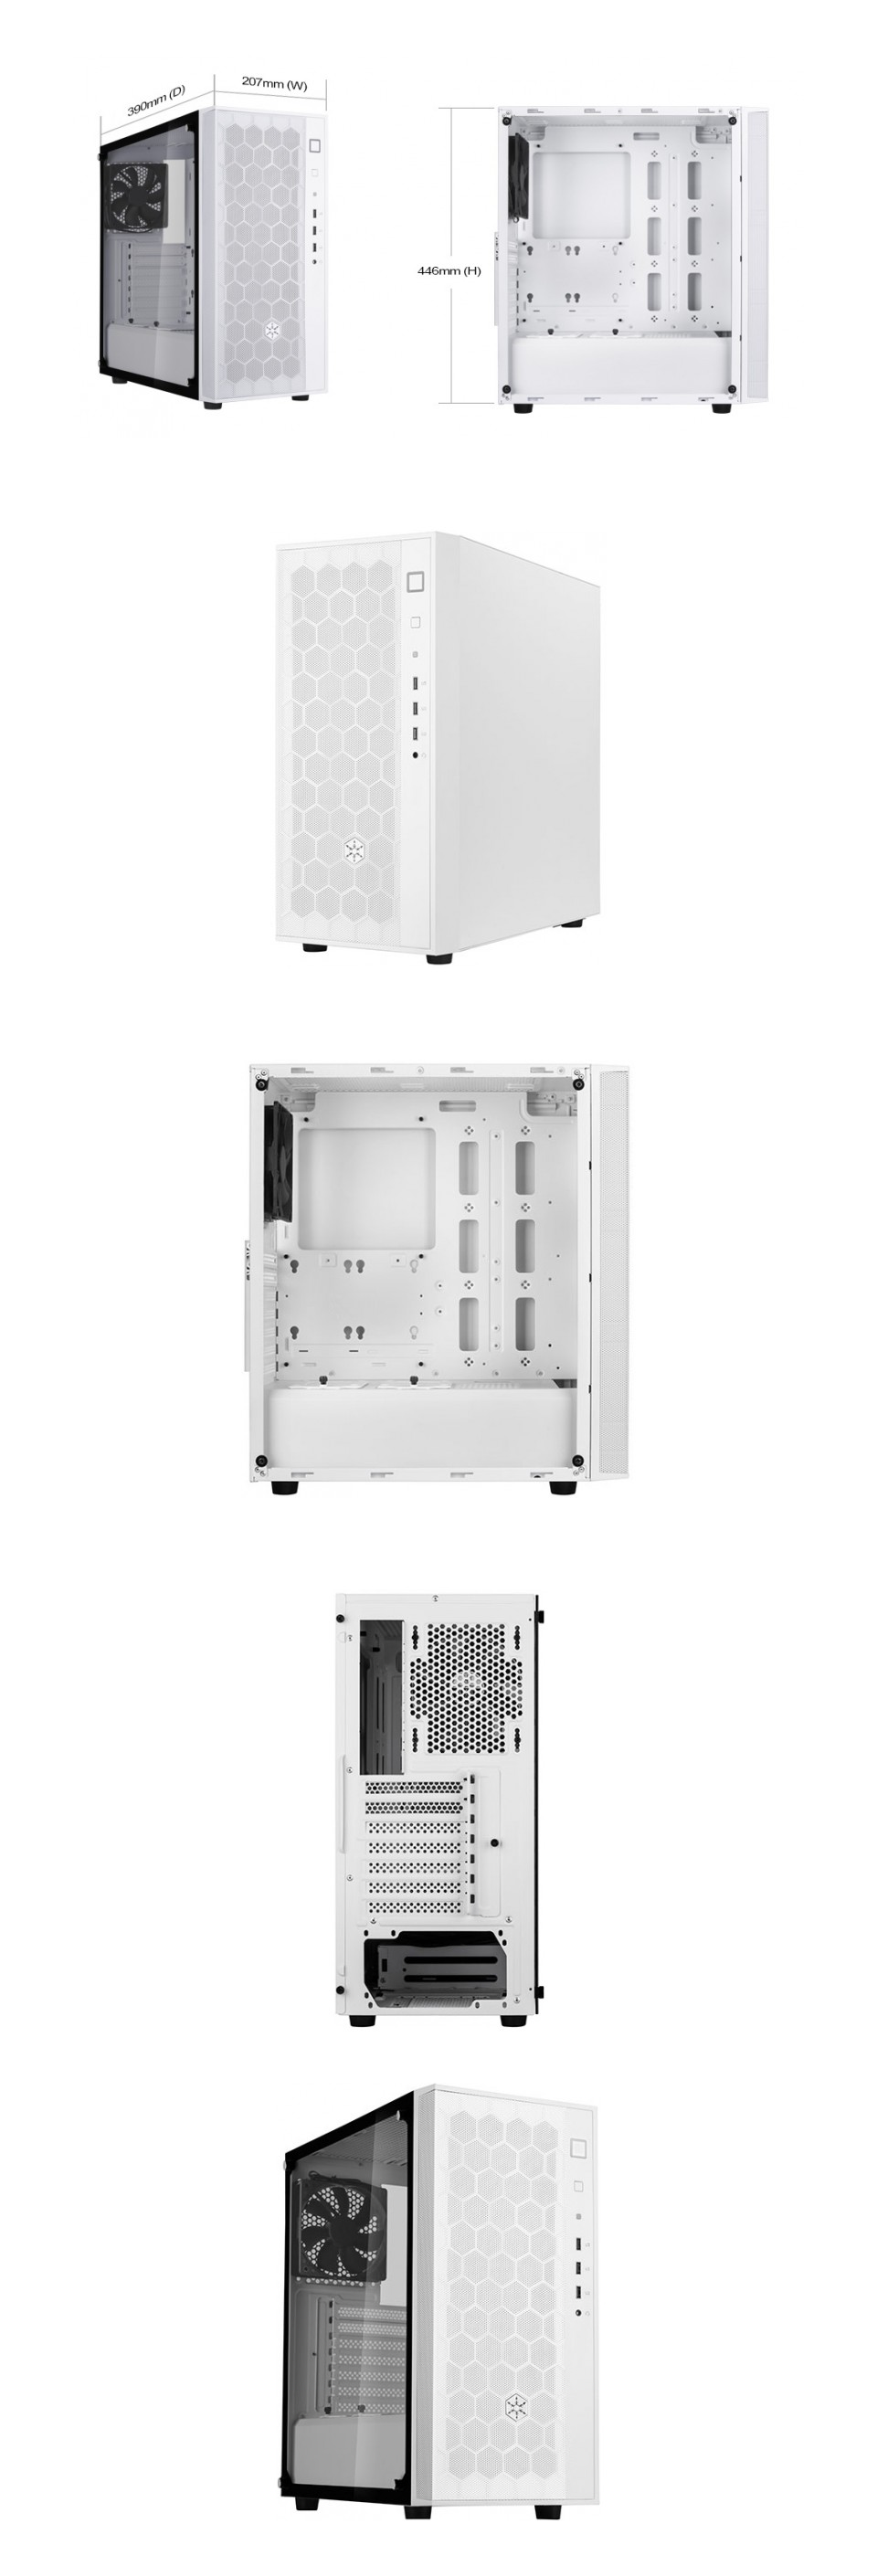 SilverStone Fara FAR1 Case White product